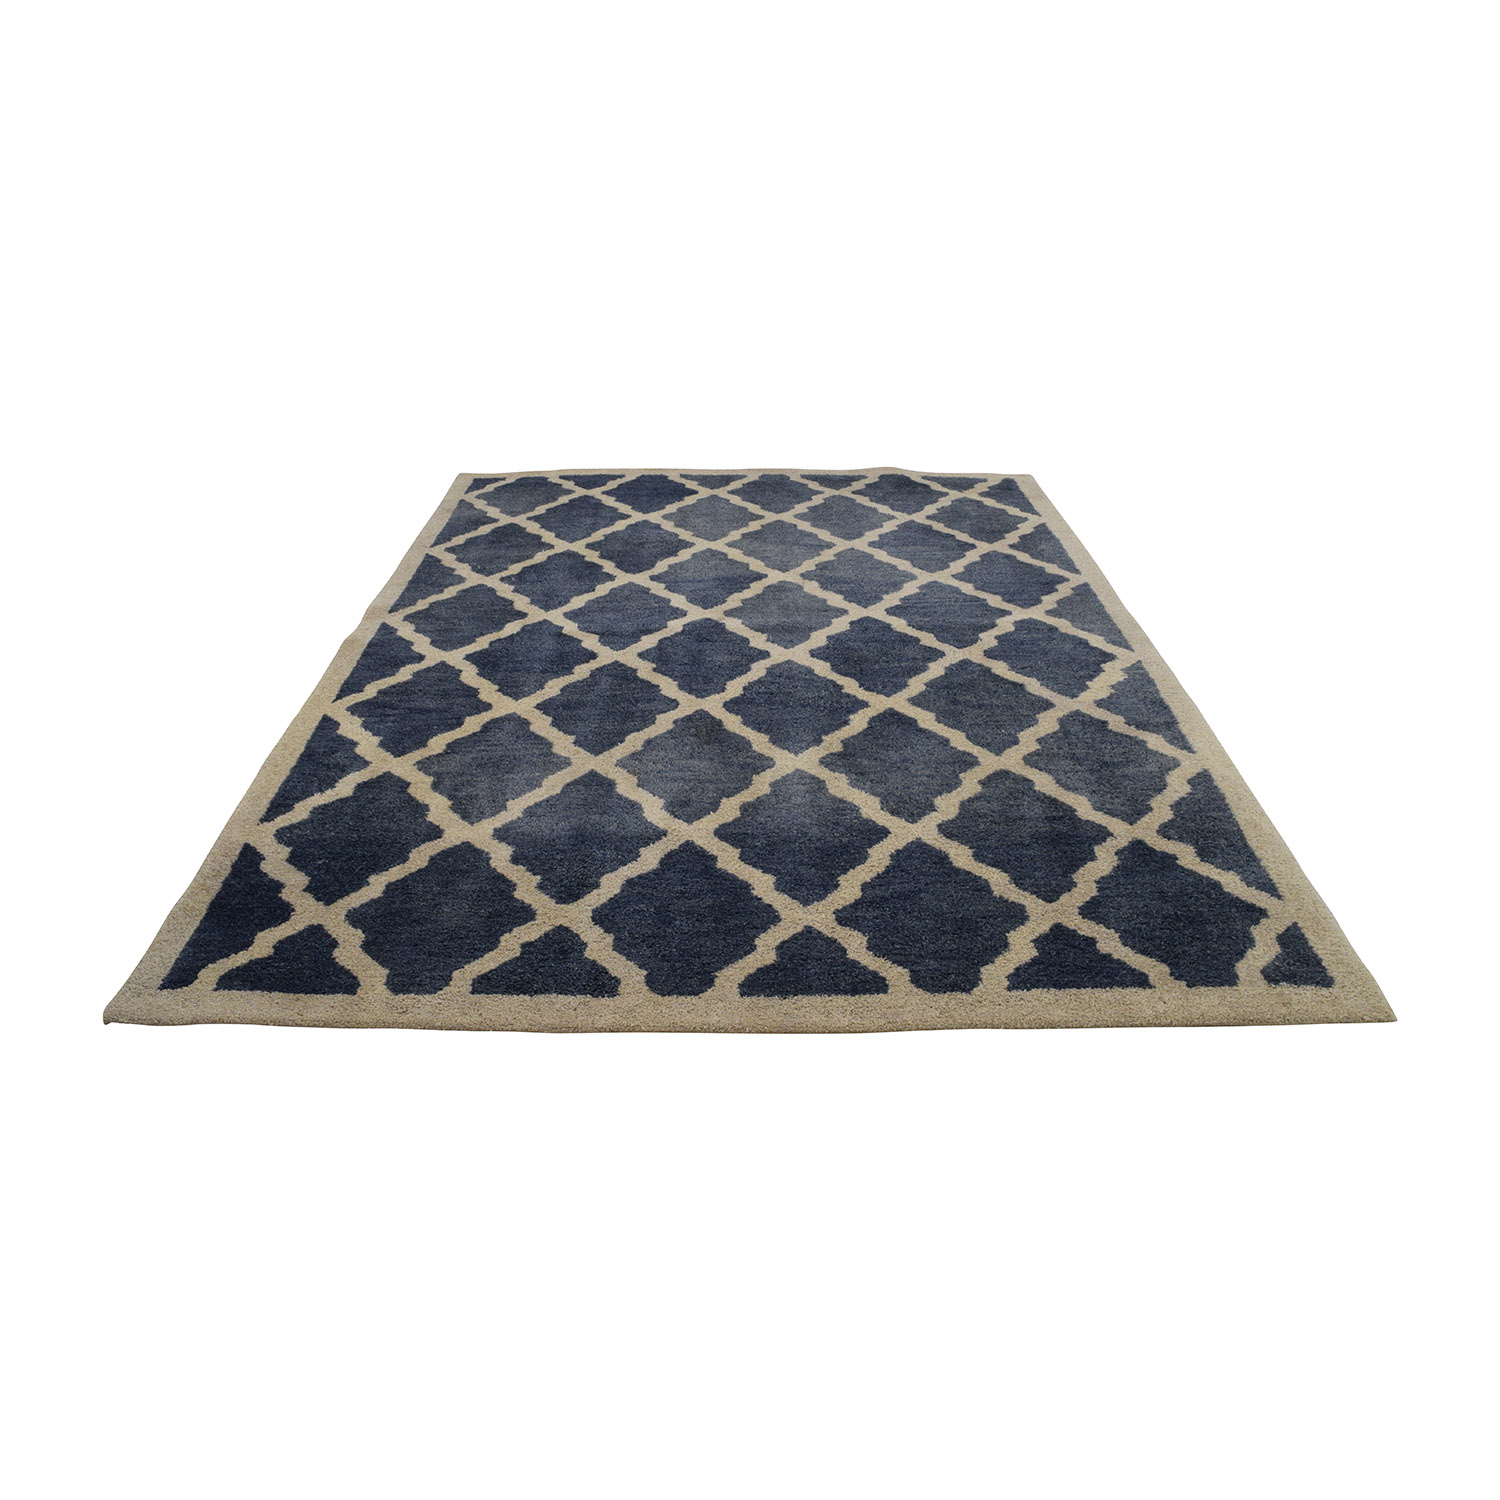 NuLOOM NuLOOM Navy and White Marrakech Trellis Rug on sale